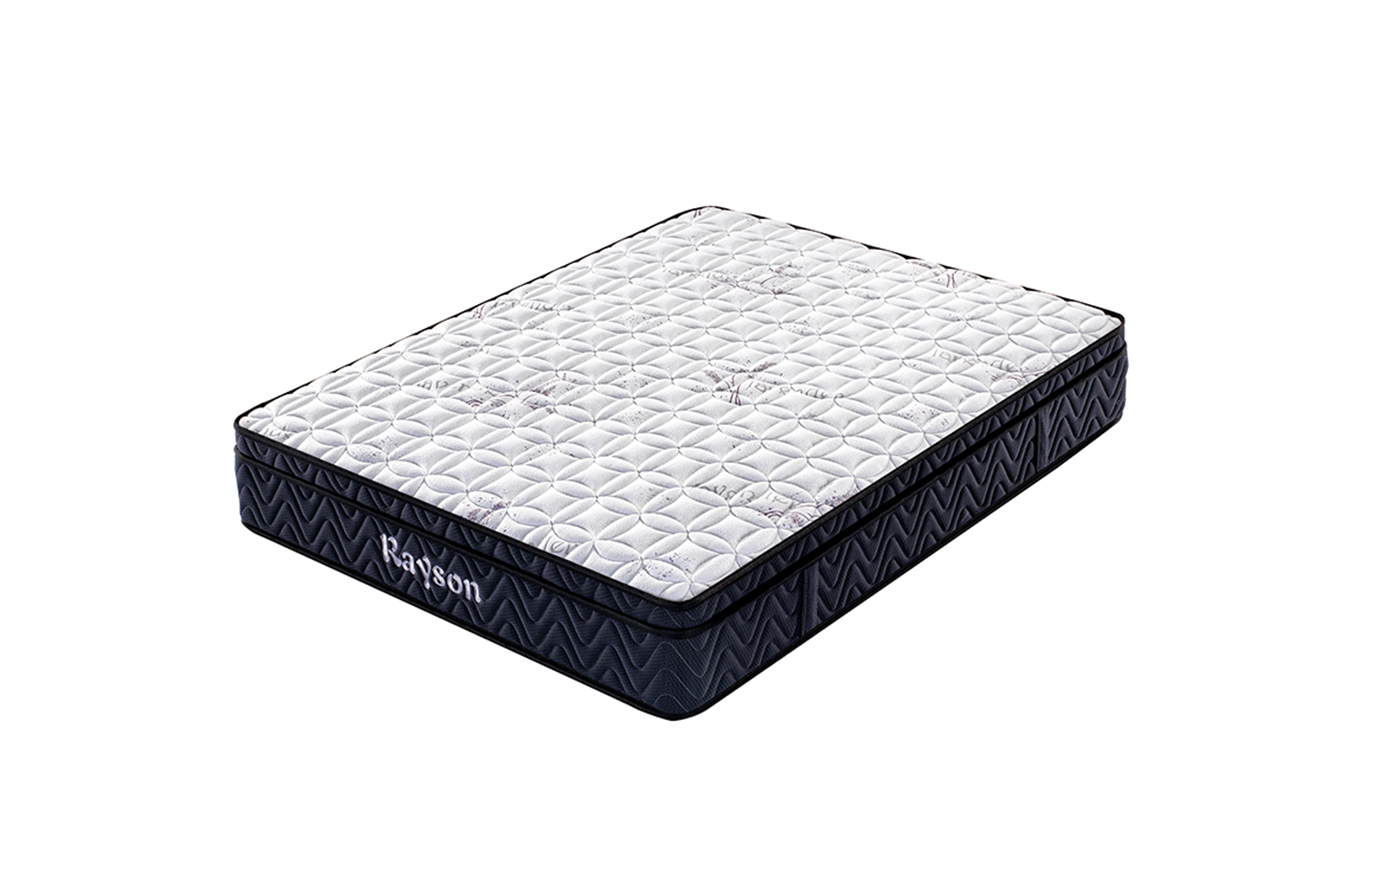 Rayson Mattress-Pocket Sprung Double Mattress With Memory Foam Top | Super Ortho Firm Bonnell